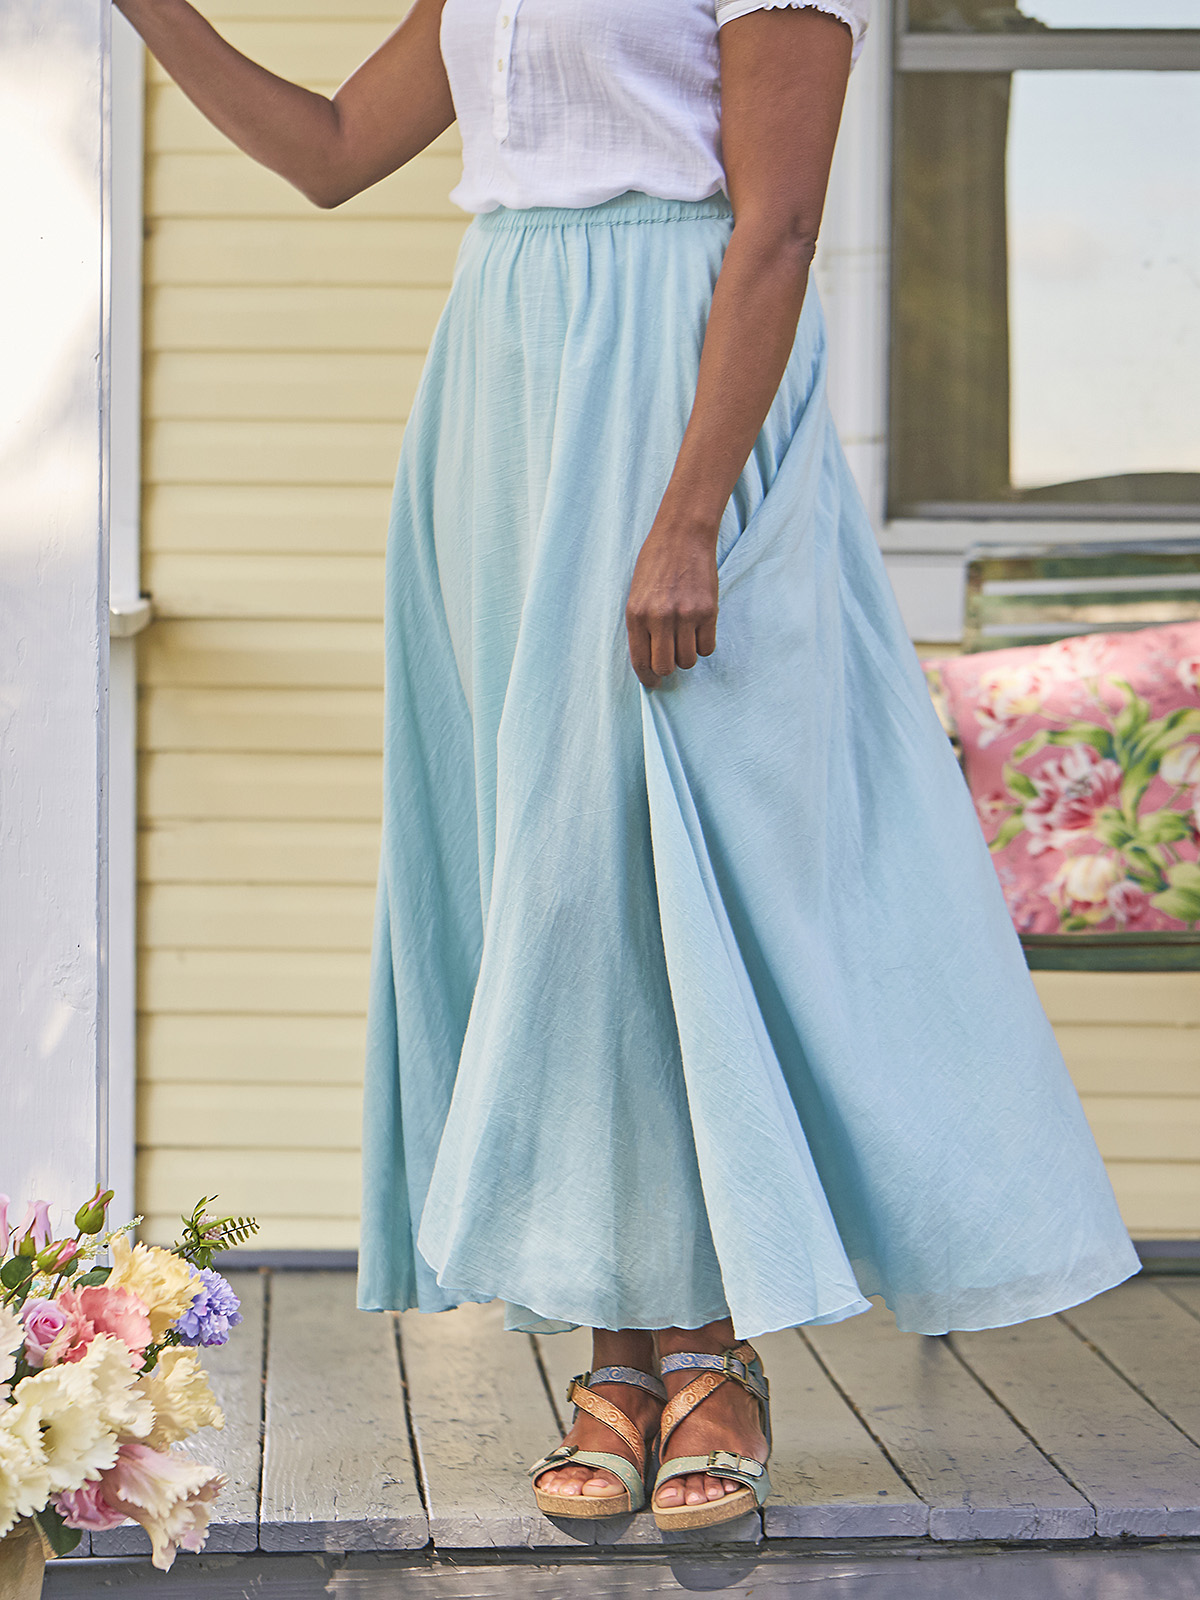 Woman in Aqua colored skirt standing on a porch.